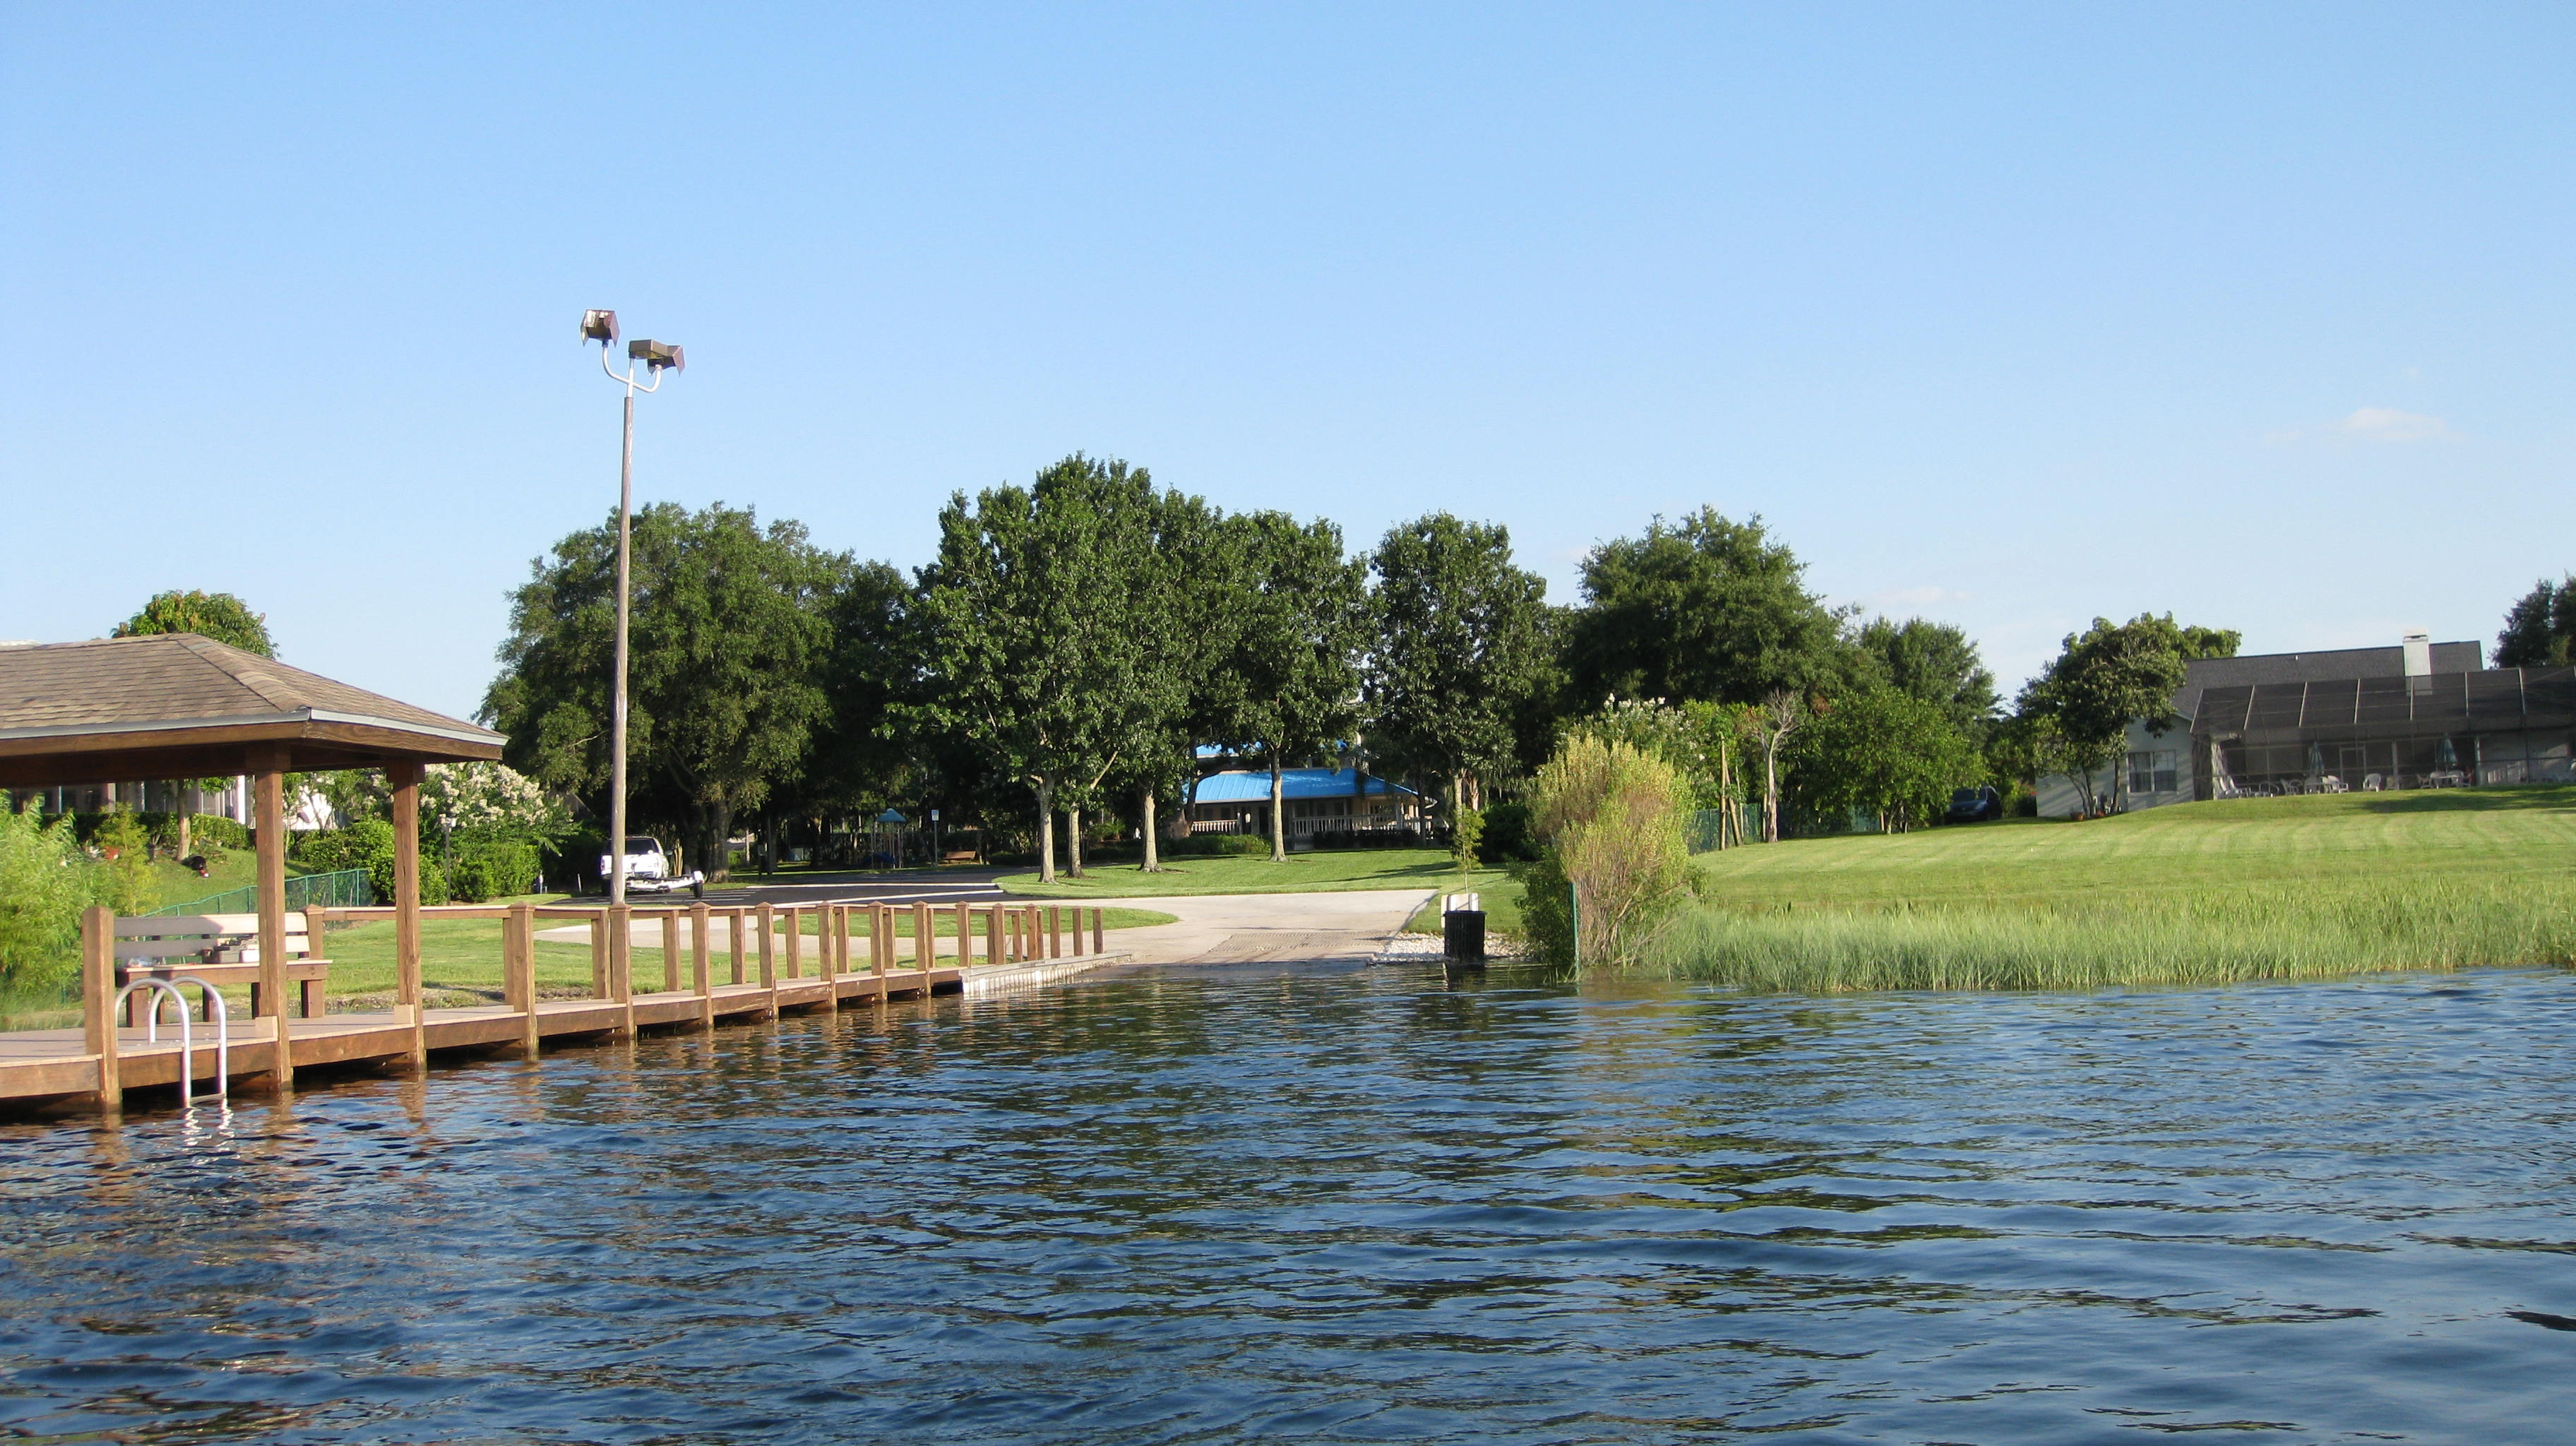 Private lakes orlando bass fishing guide for Fishing in orlando florida